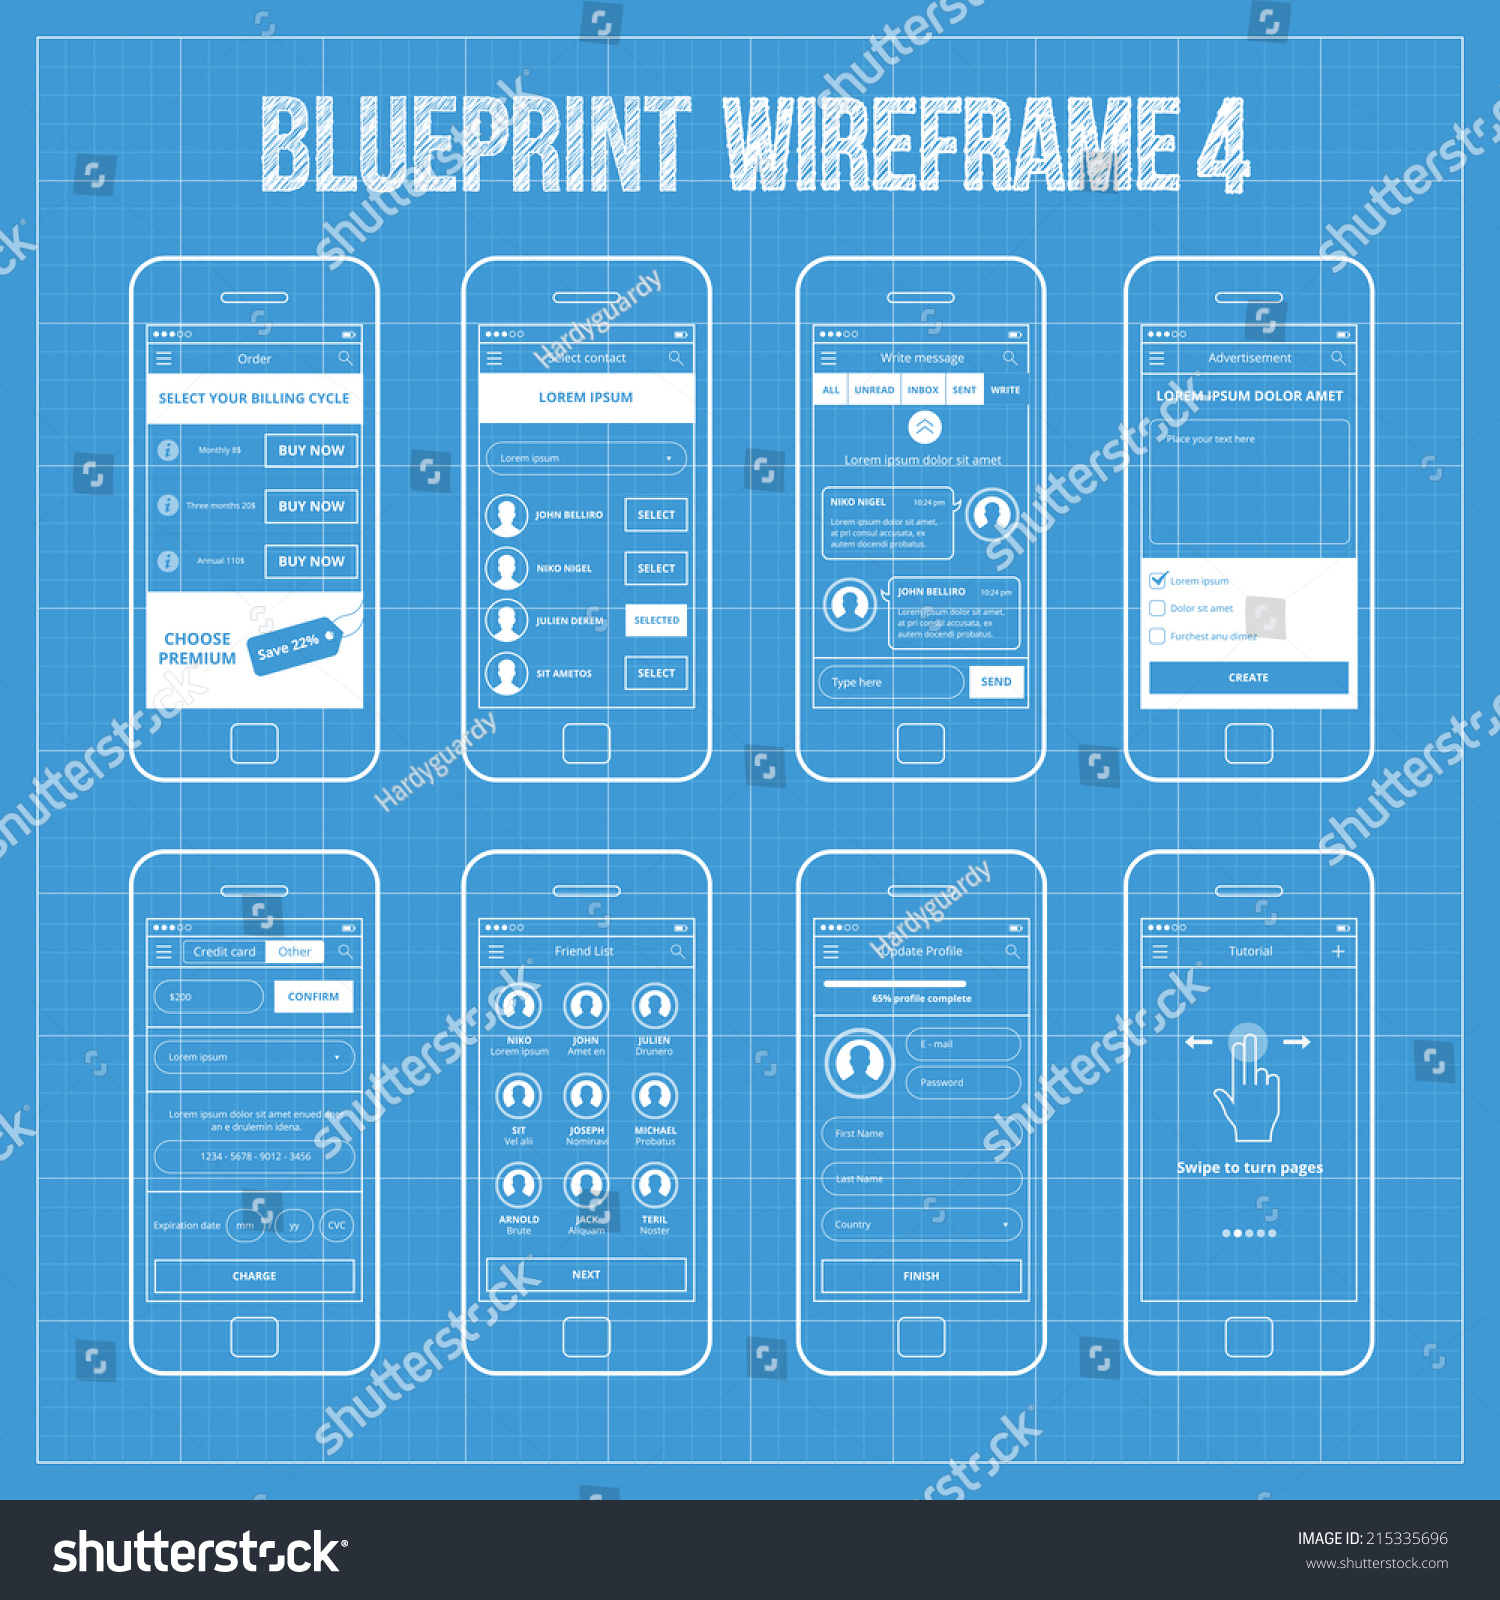 Blueprint wireframe mobile app ui kit vectores en stock 215335696 blueprint wireframe mobile app ui kit 4 order screen select contact screen write malvernweather Gallery